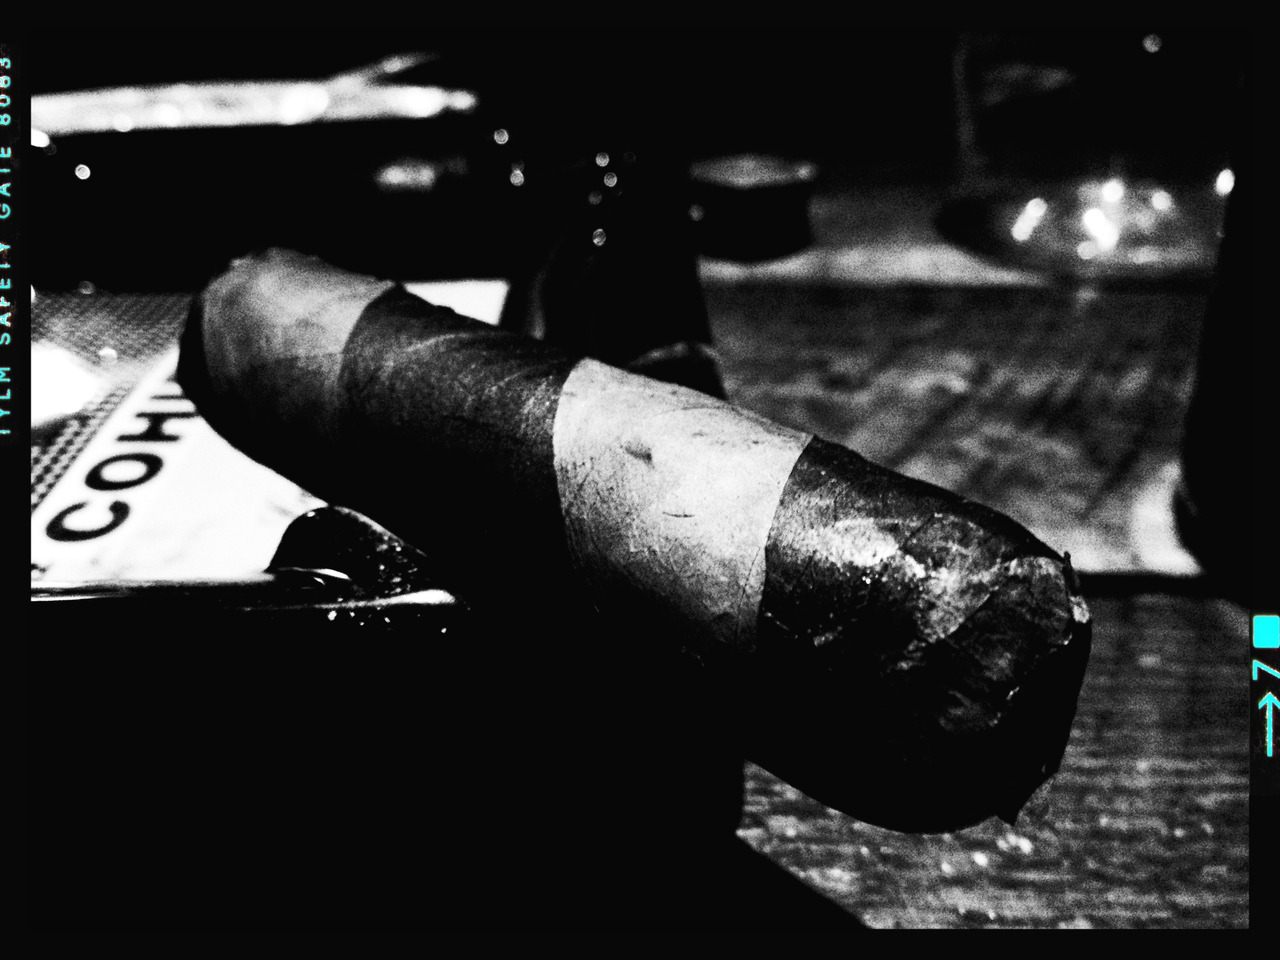 Smoke one #peppersearching #cigar #smoke #gentlemen